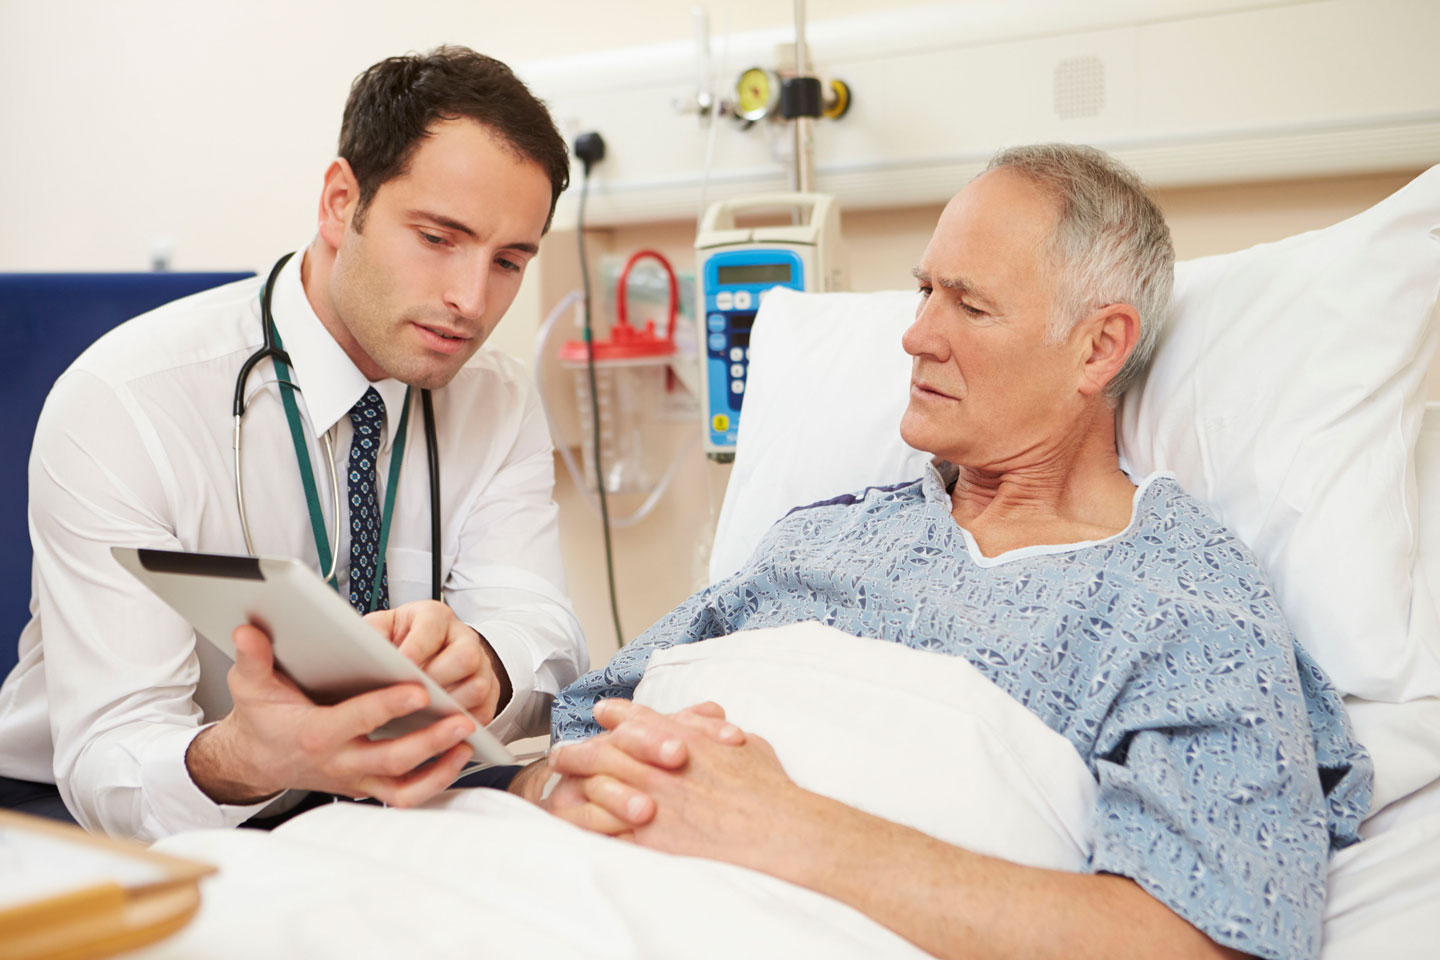 Patient Education for Patients Who Do Not Read